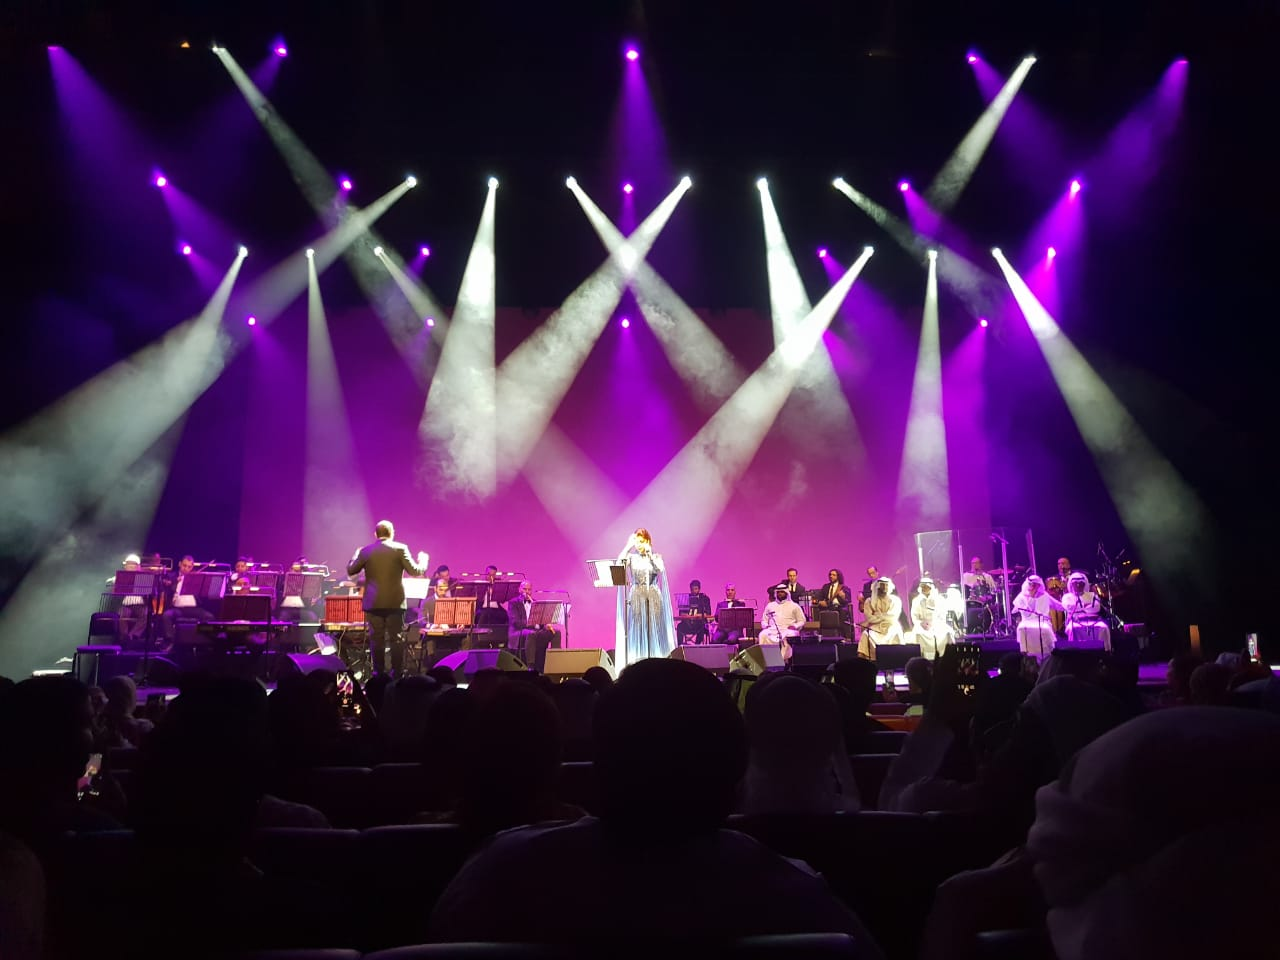 A marvelous stage between the orchestra, the lights and Assala